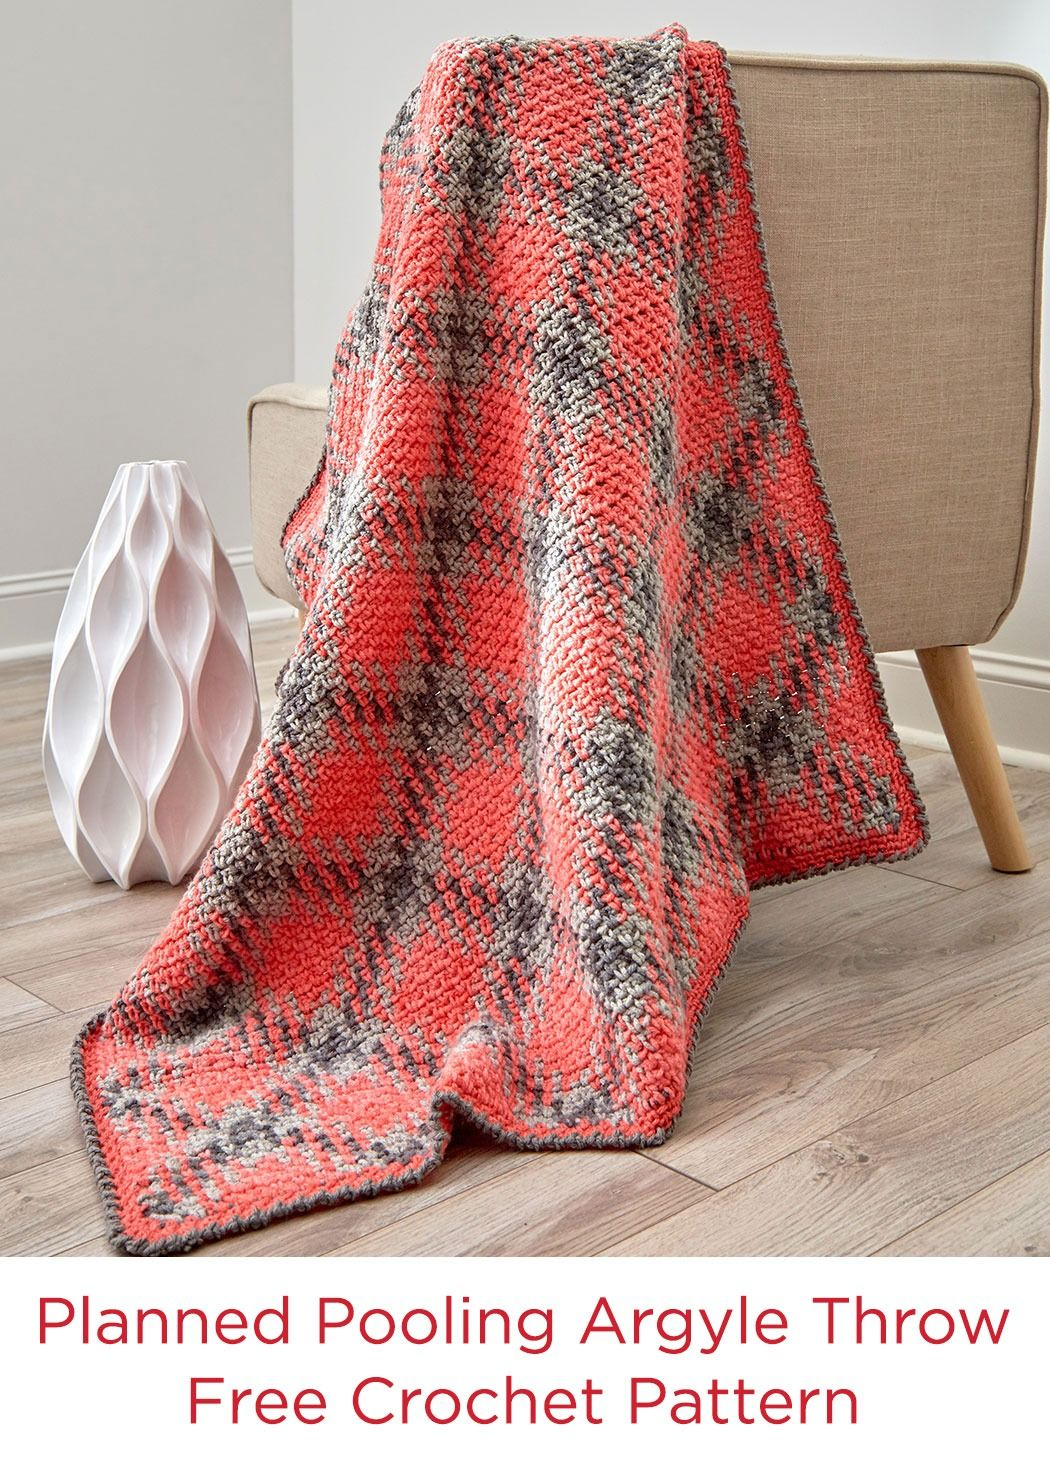 Planned Pooling Argyle Throw Or Blanket Free Crochet